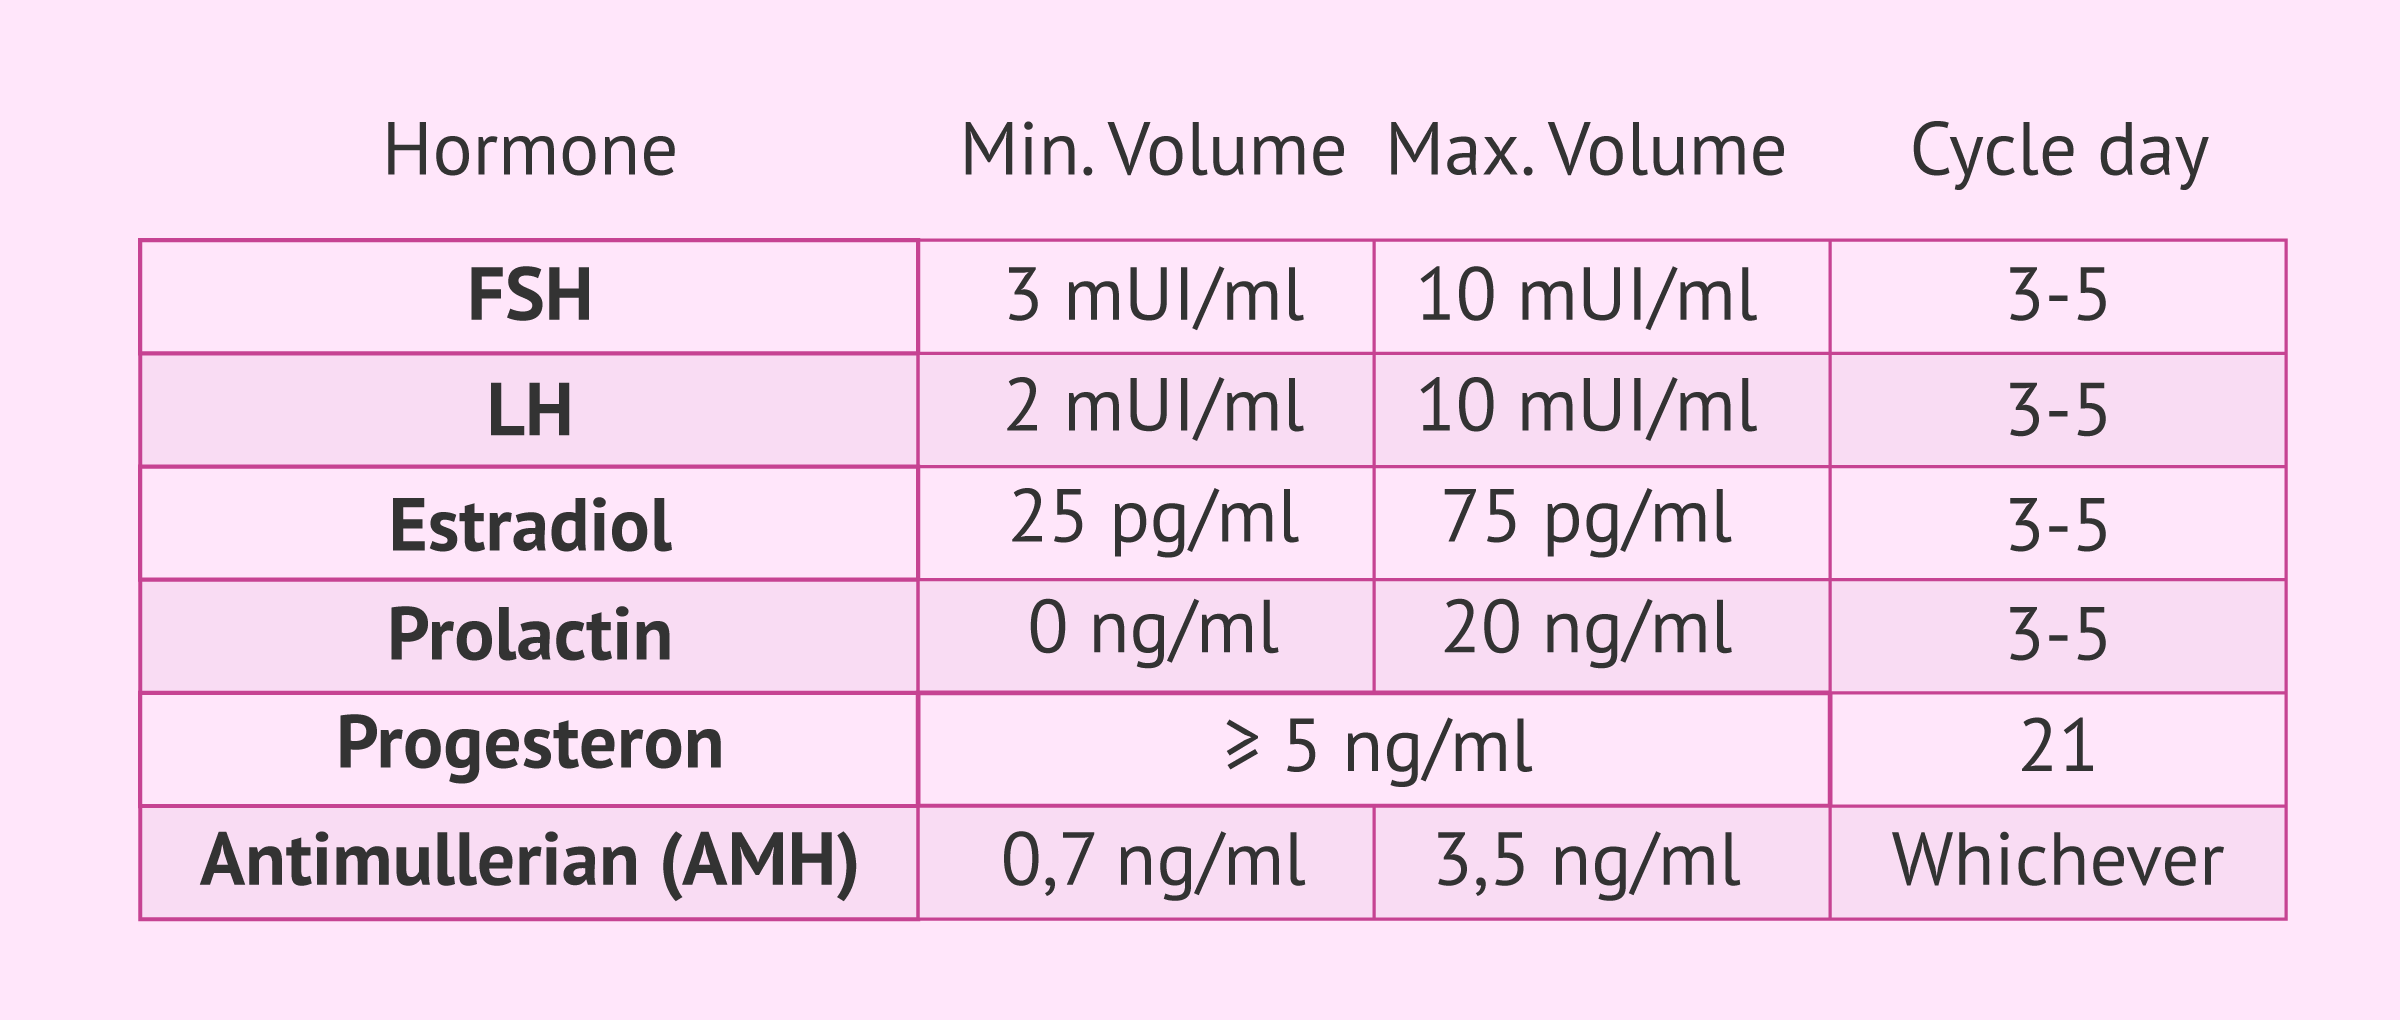 Table of female hormone values